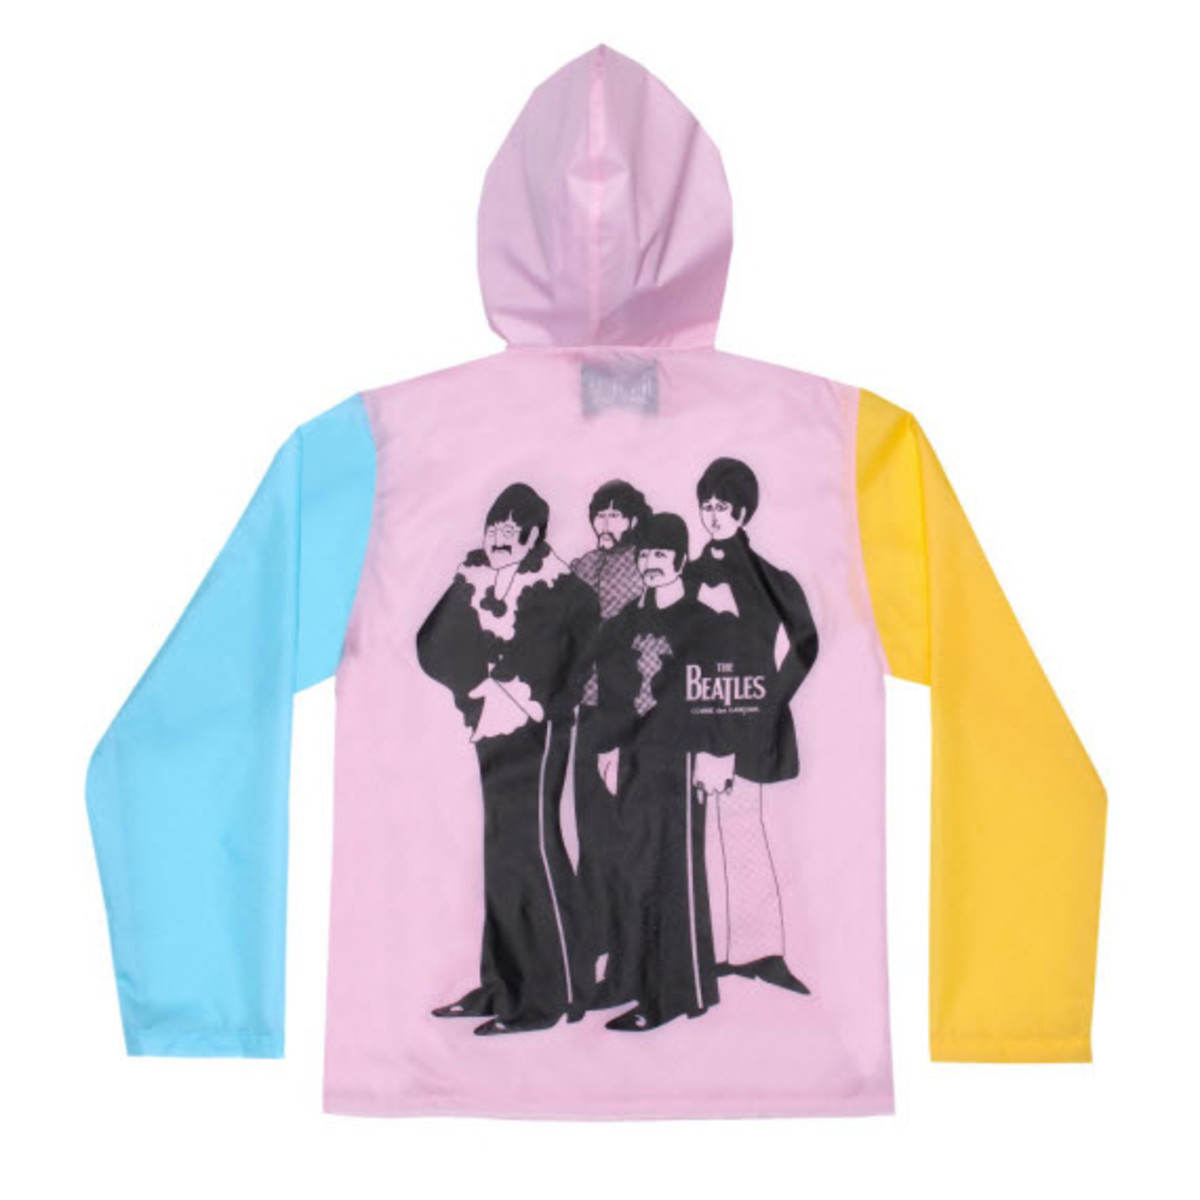 comme-des-garcons-x-the-beatles-the-beatles-springsummer-2013-capsule-collection-7